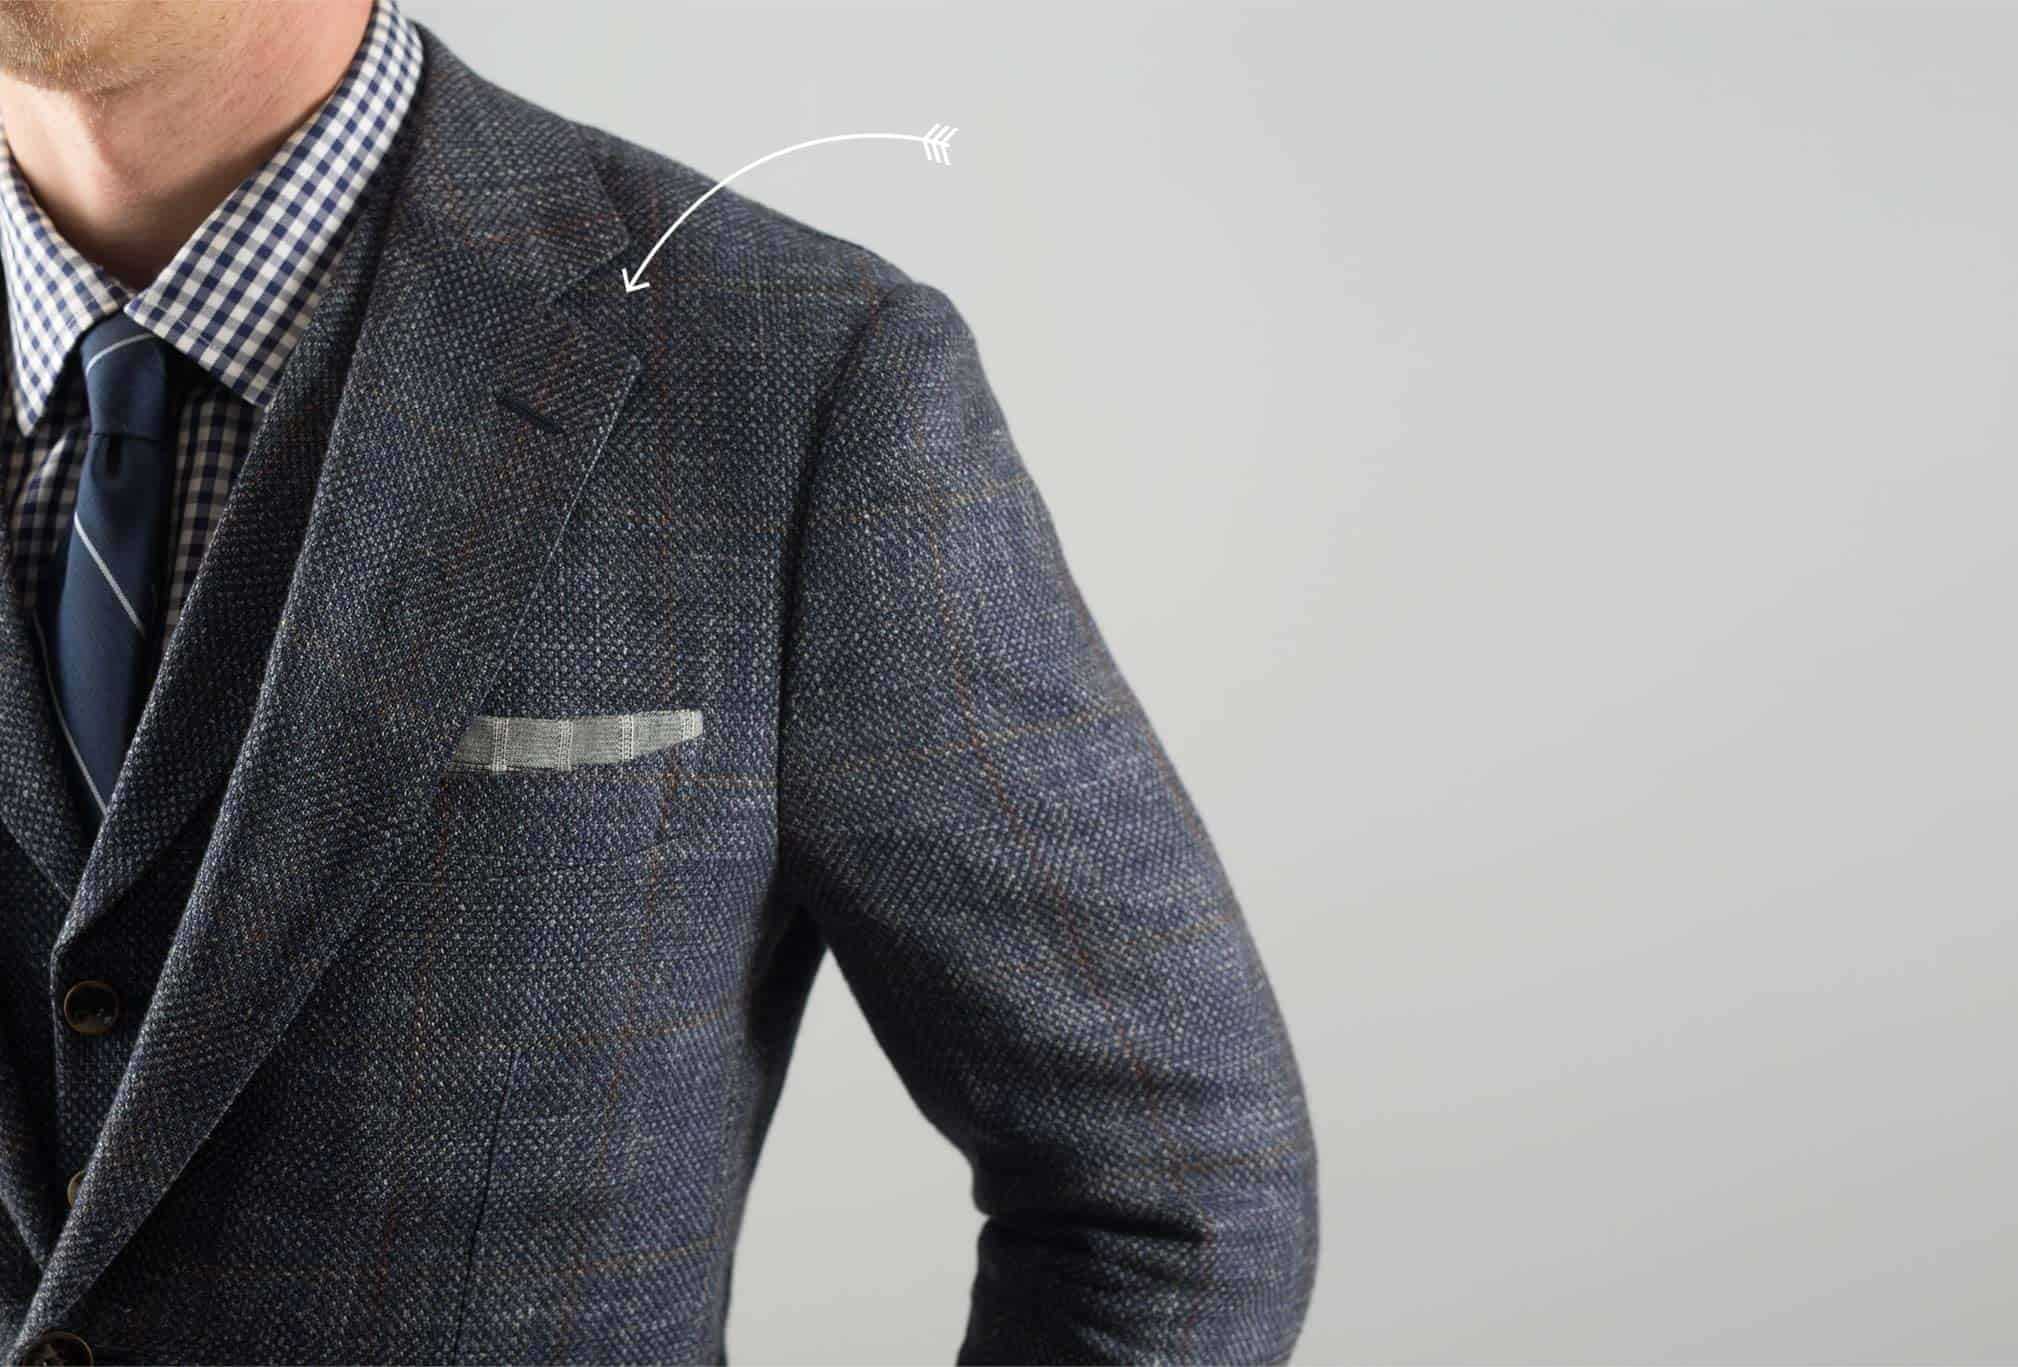 Arrow pointing at suit collar